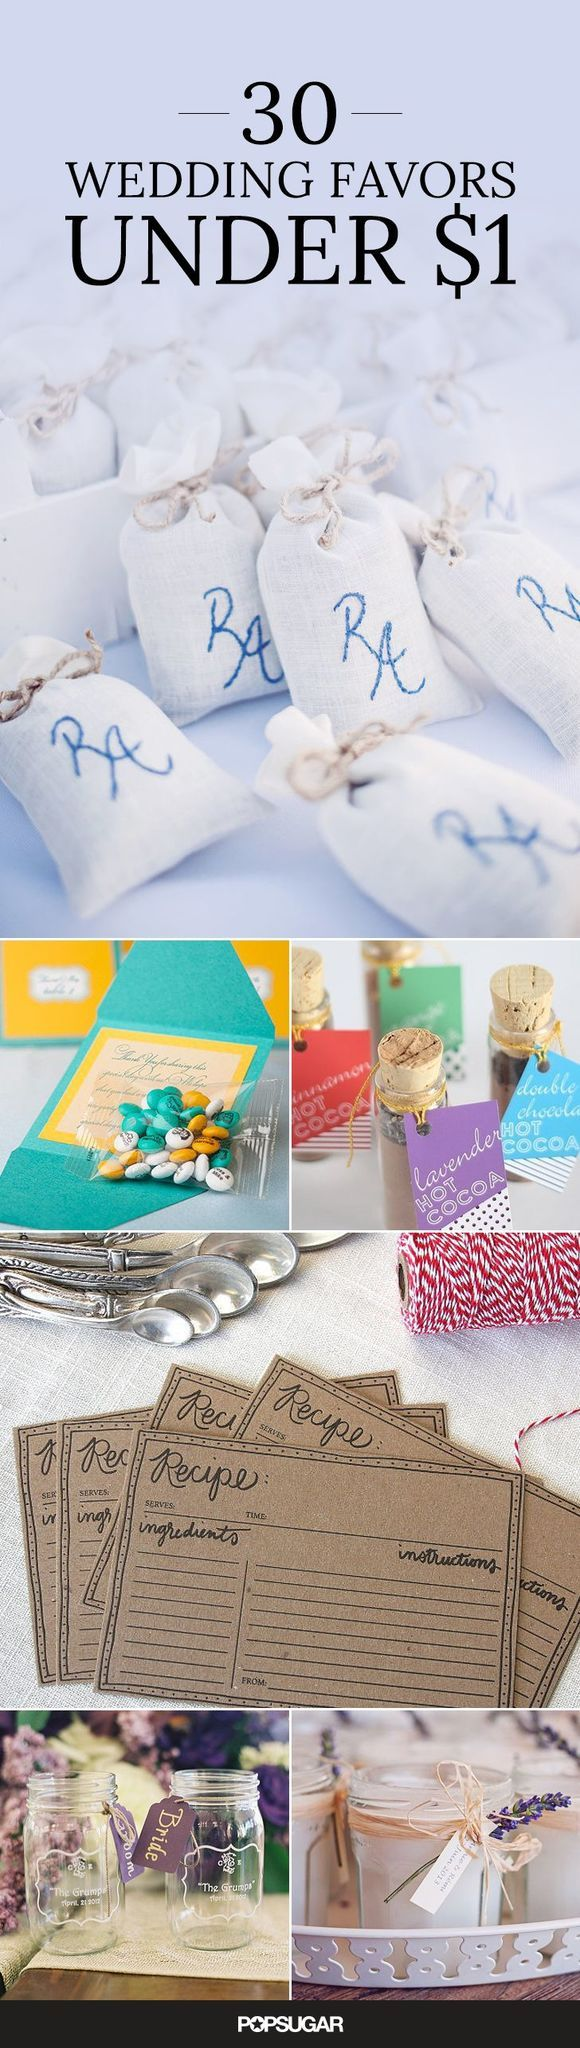 Wedding gifts for guests online jobs